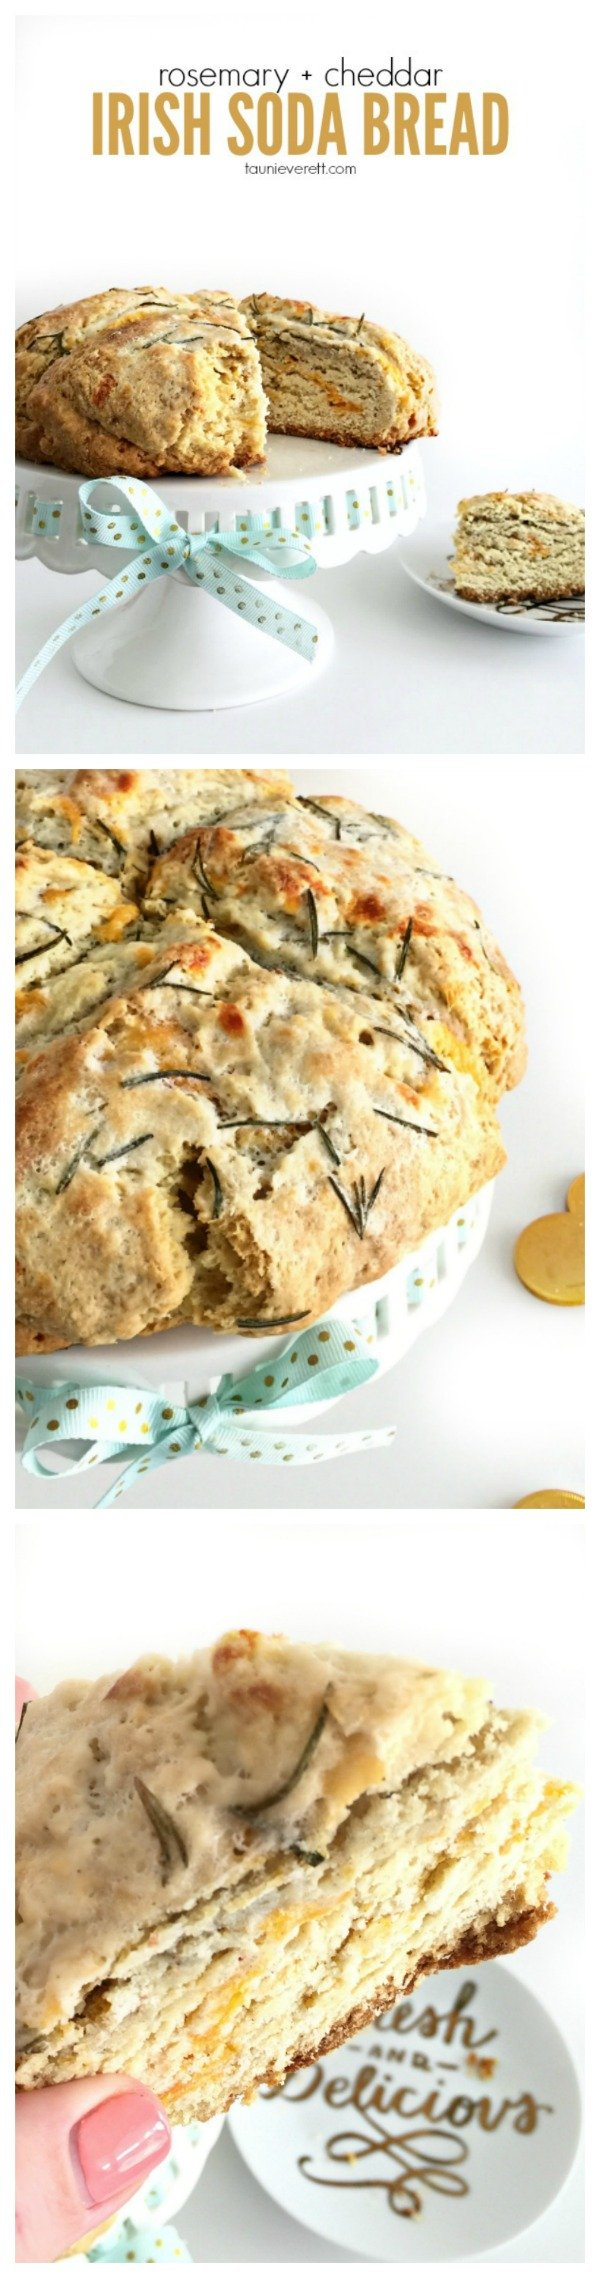 Rosemary cheddar Irish Soda Bread Recipe. Perfect for St. Patrick's Day!